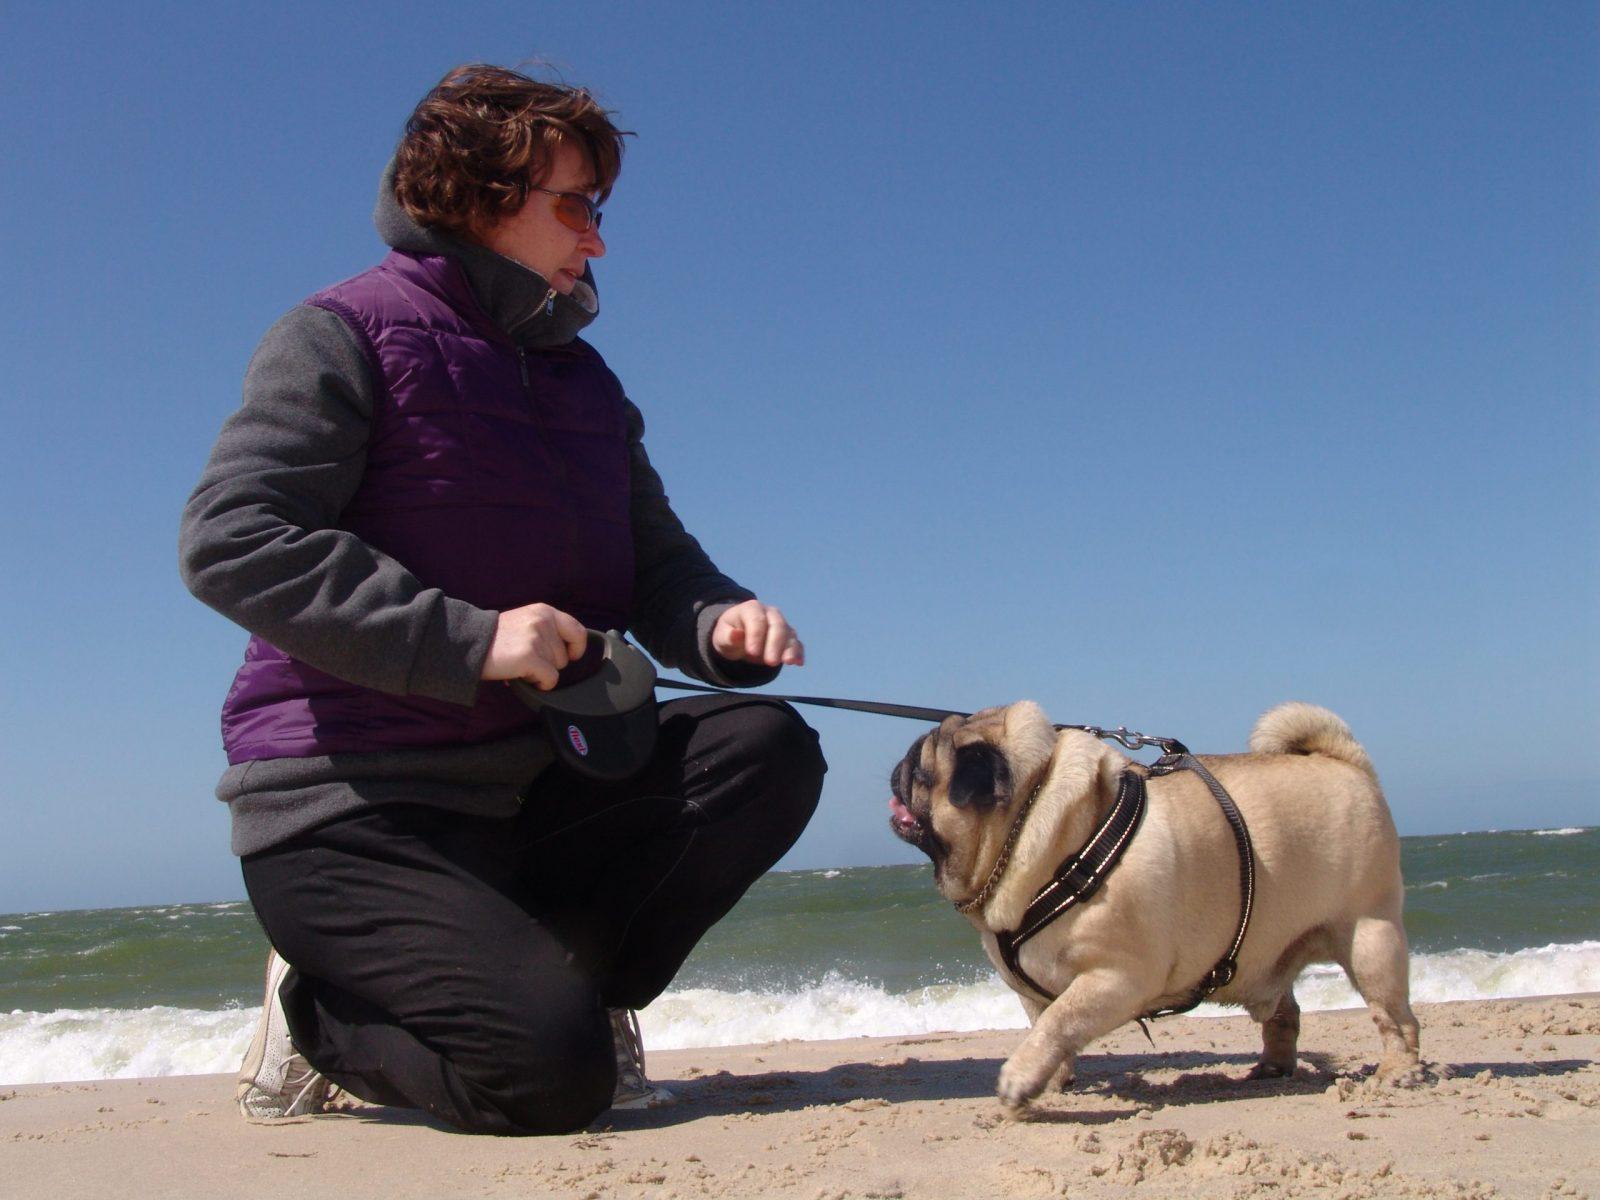 Pug Valli with his mother playing on the beach